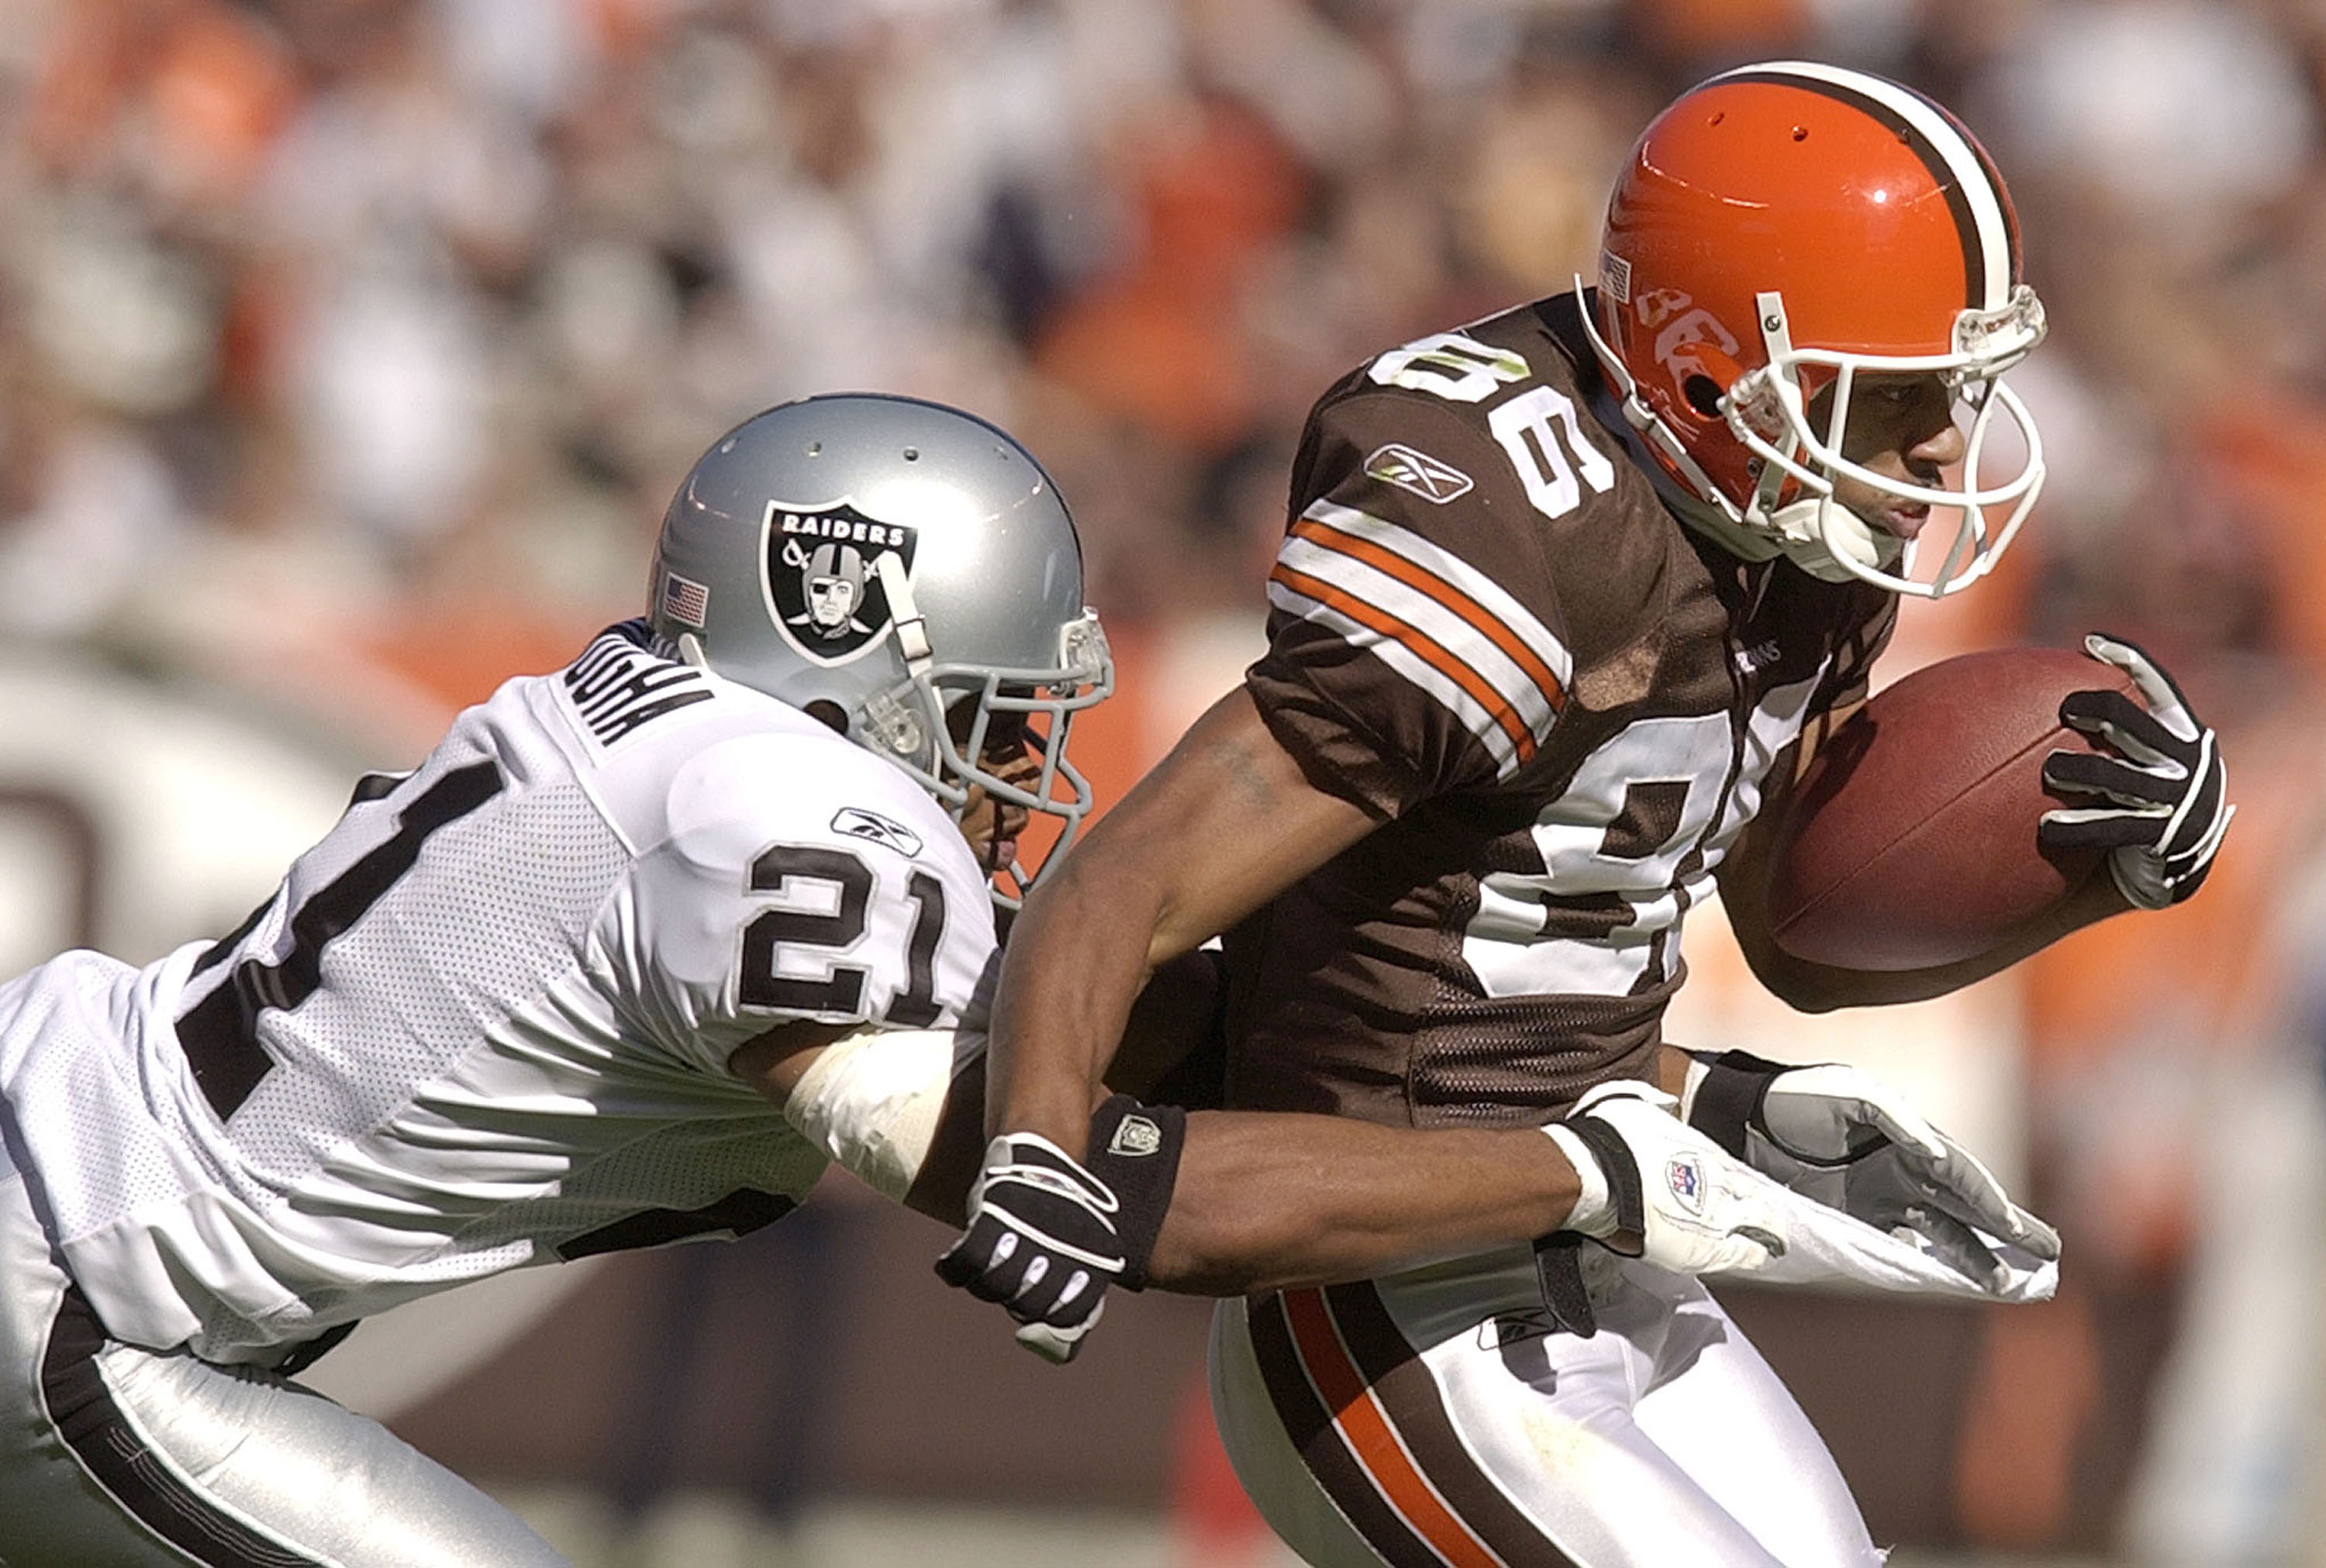 CLEVELAND, OH - OCTOBER 12:  Wide receiver Dennis Northcutt #86 of the Cleveland Browns is tackled by Nnamdi Asomugha of the Oakland Raiders during the third quarter on October 12, 2003 at Cleveland Browns Stadium in Cleveland, Ohio. The Browns defeated t